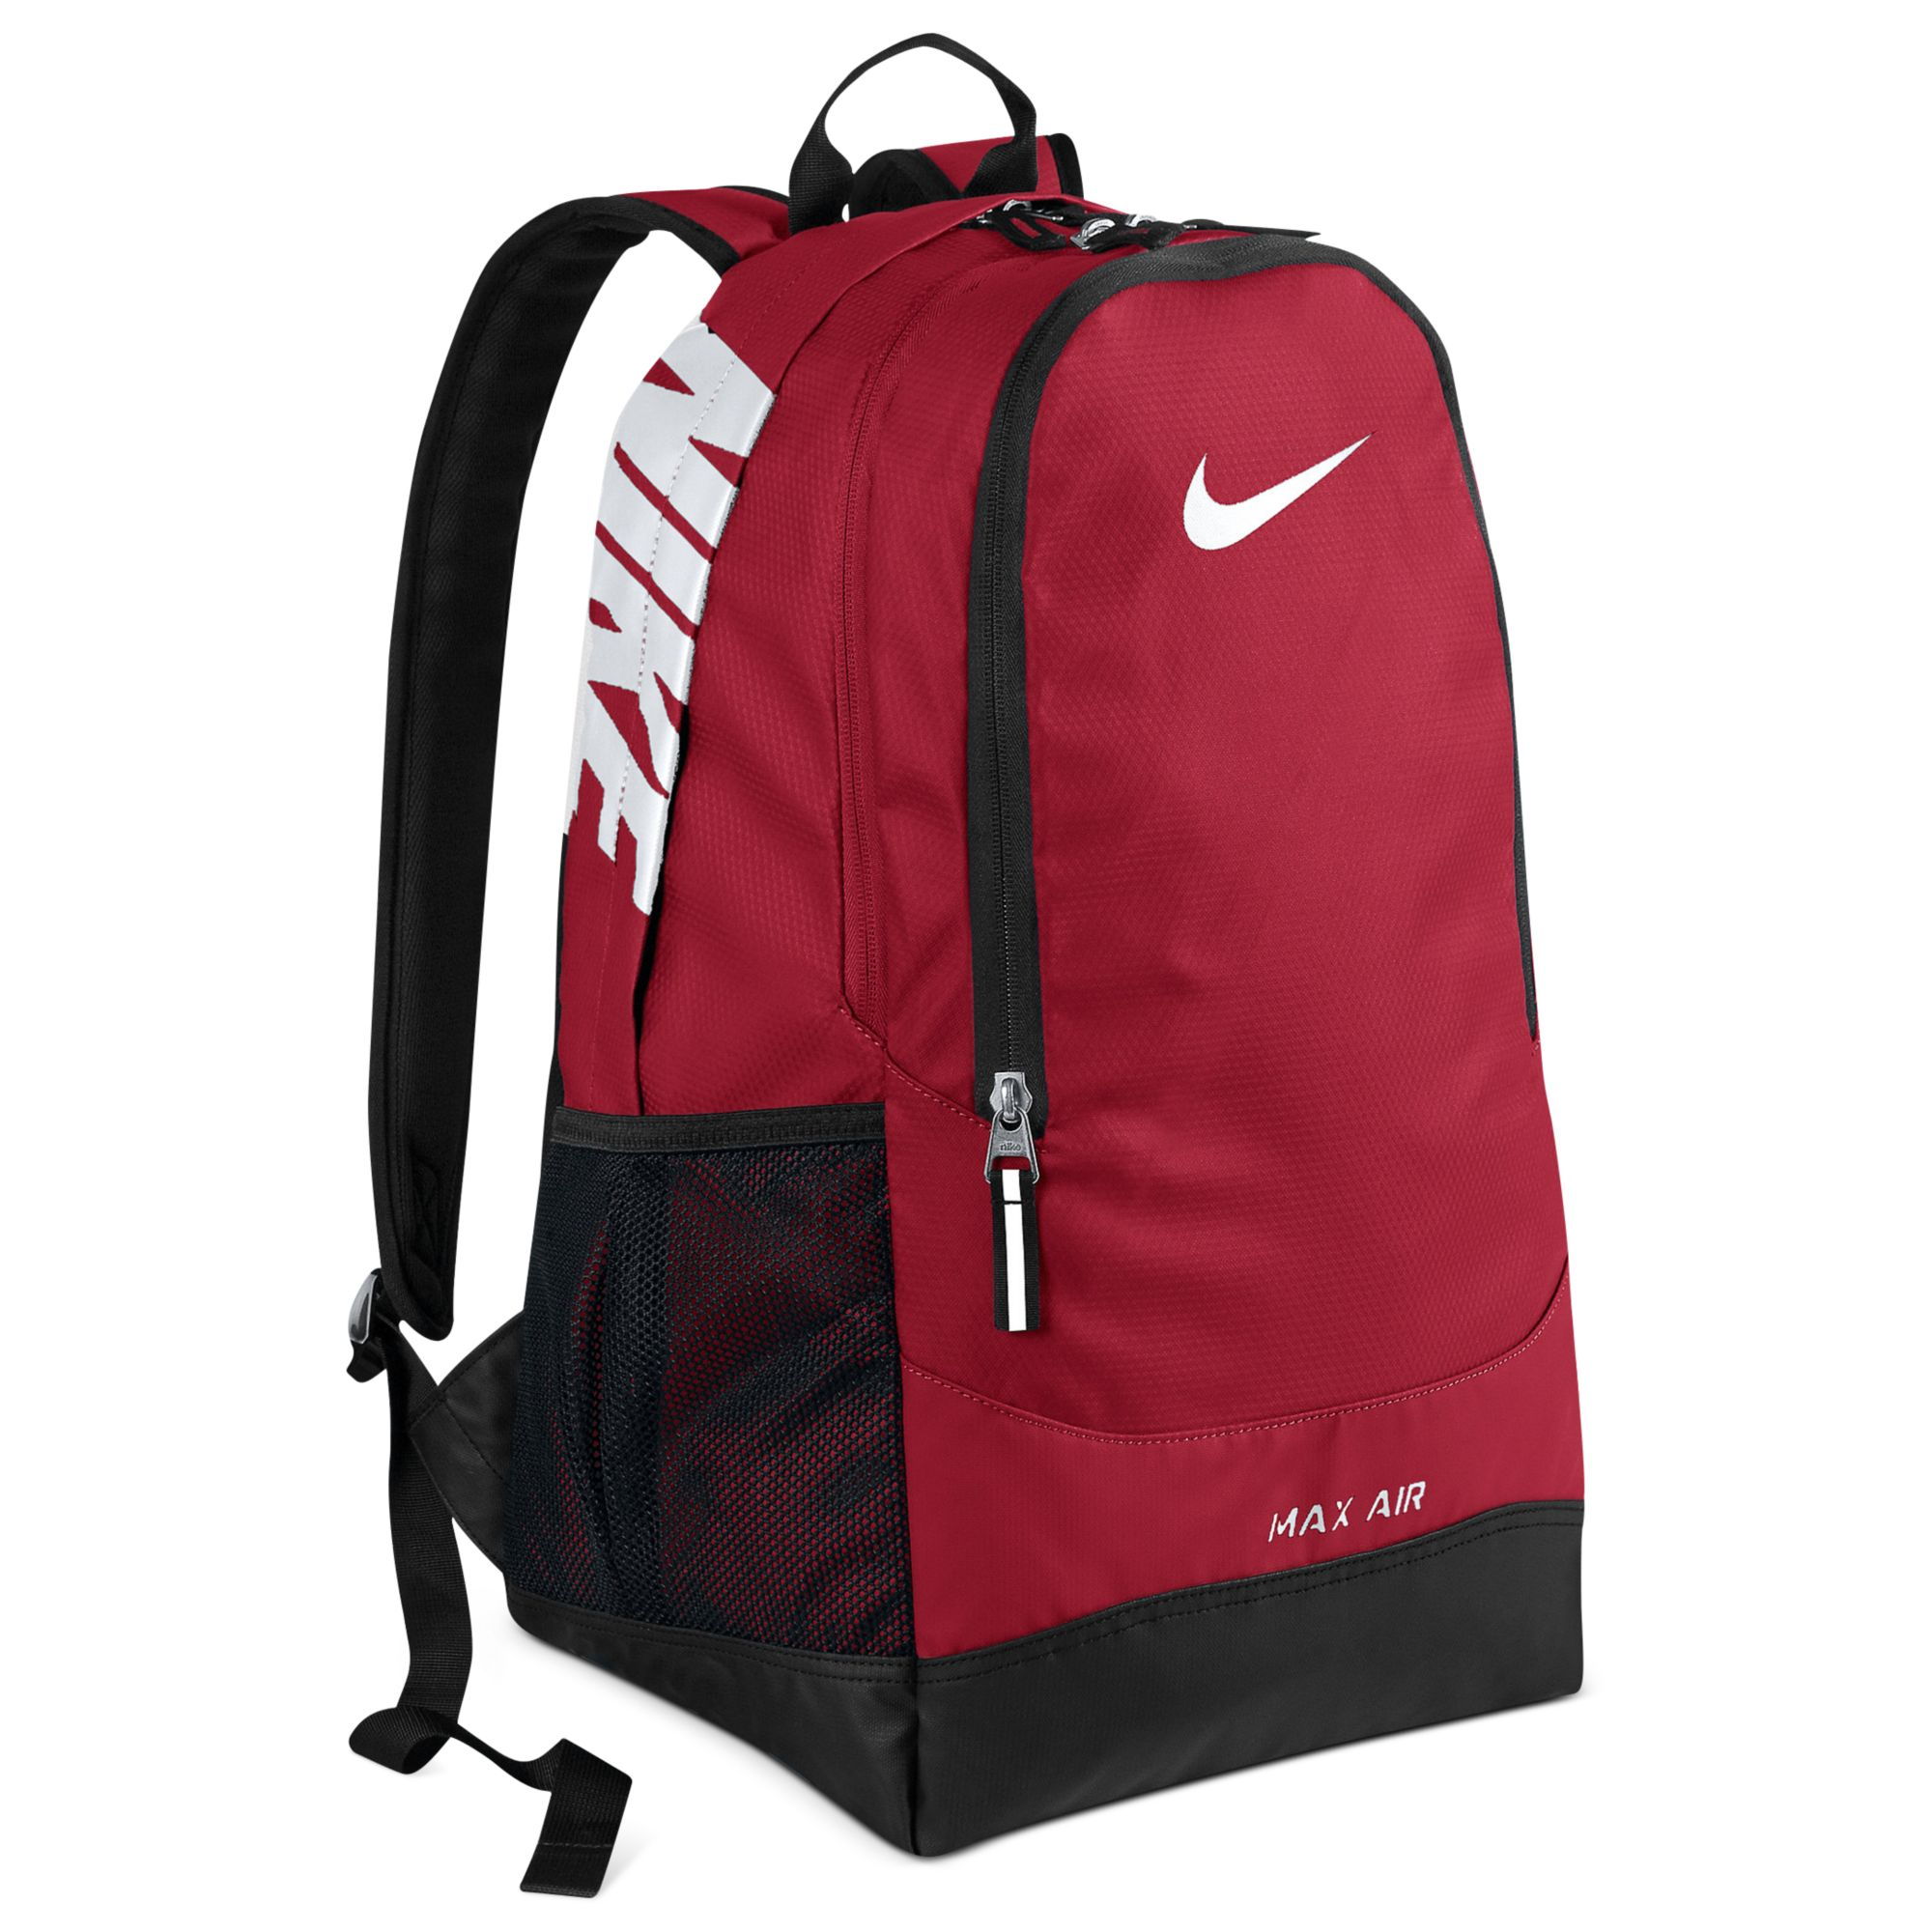 nike max air team training large backpack - gym red 11s